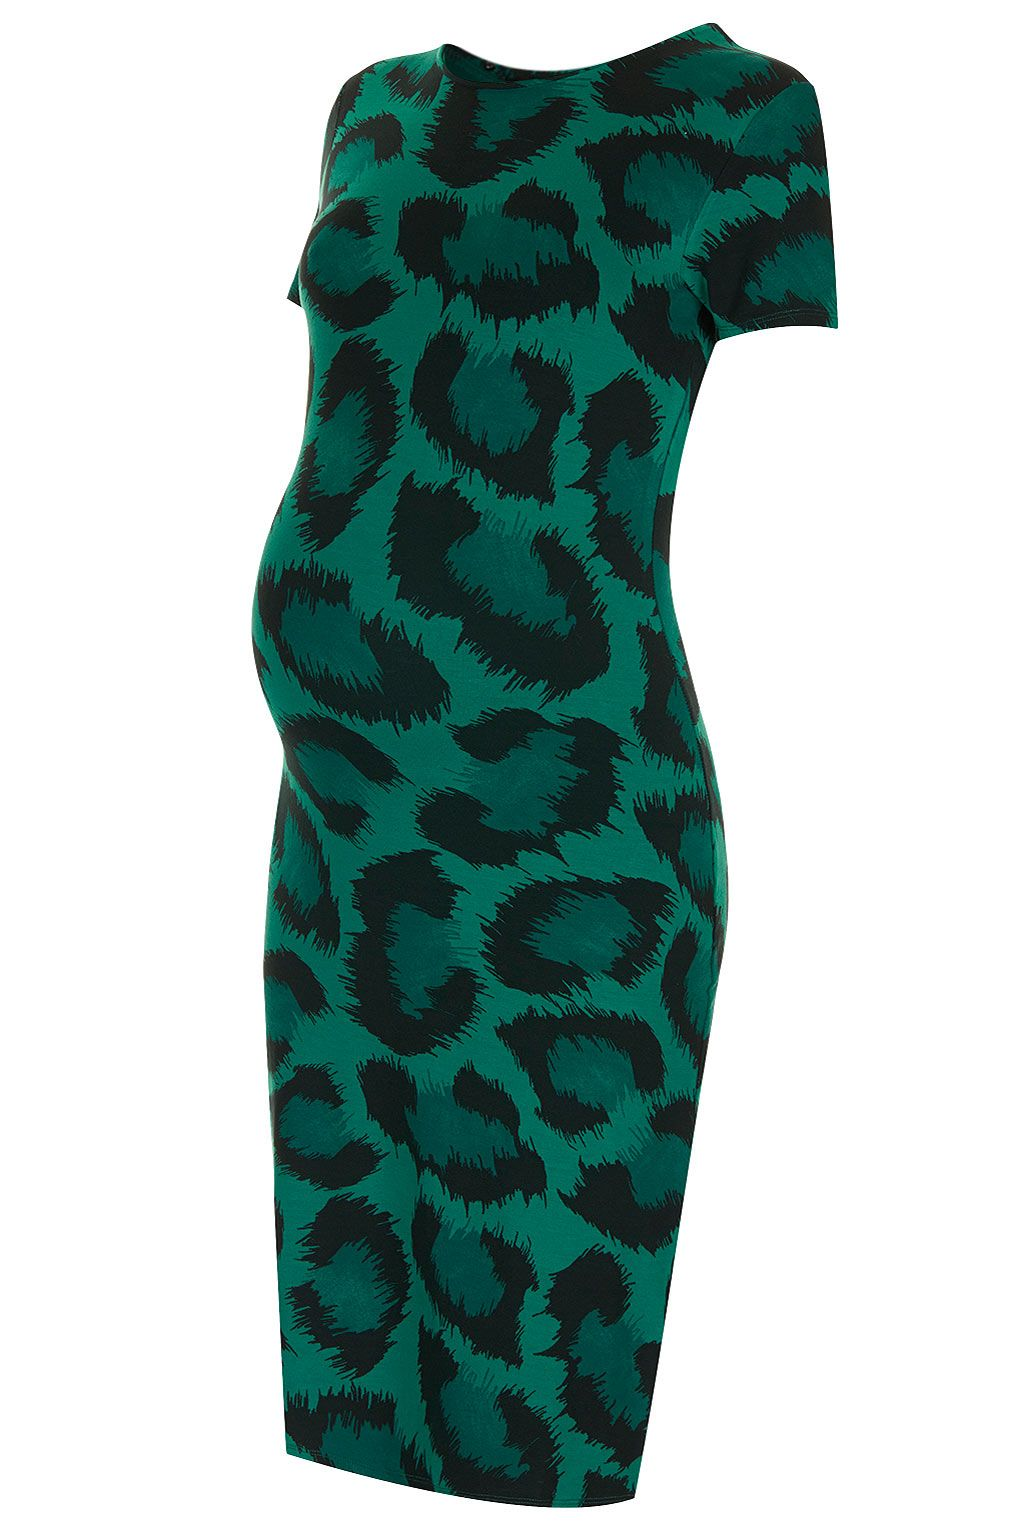 Maternity leopard bodycon topshop maternity pinterest maternity leopard bodycon topshop ombrellifo Images